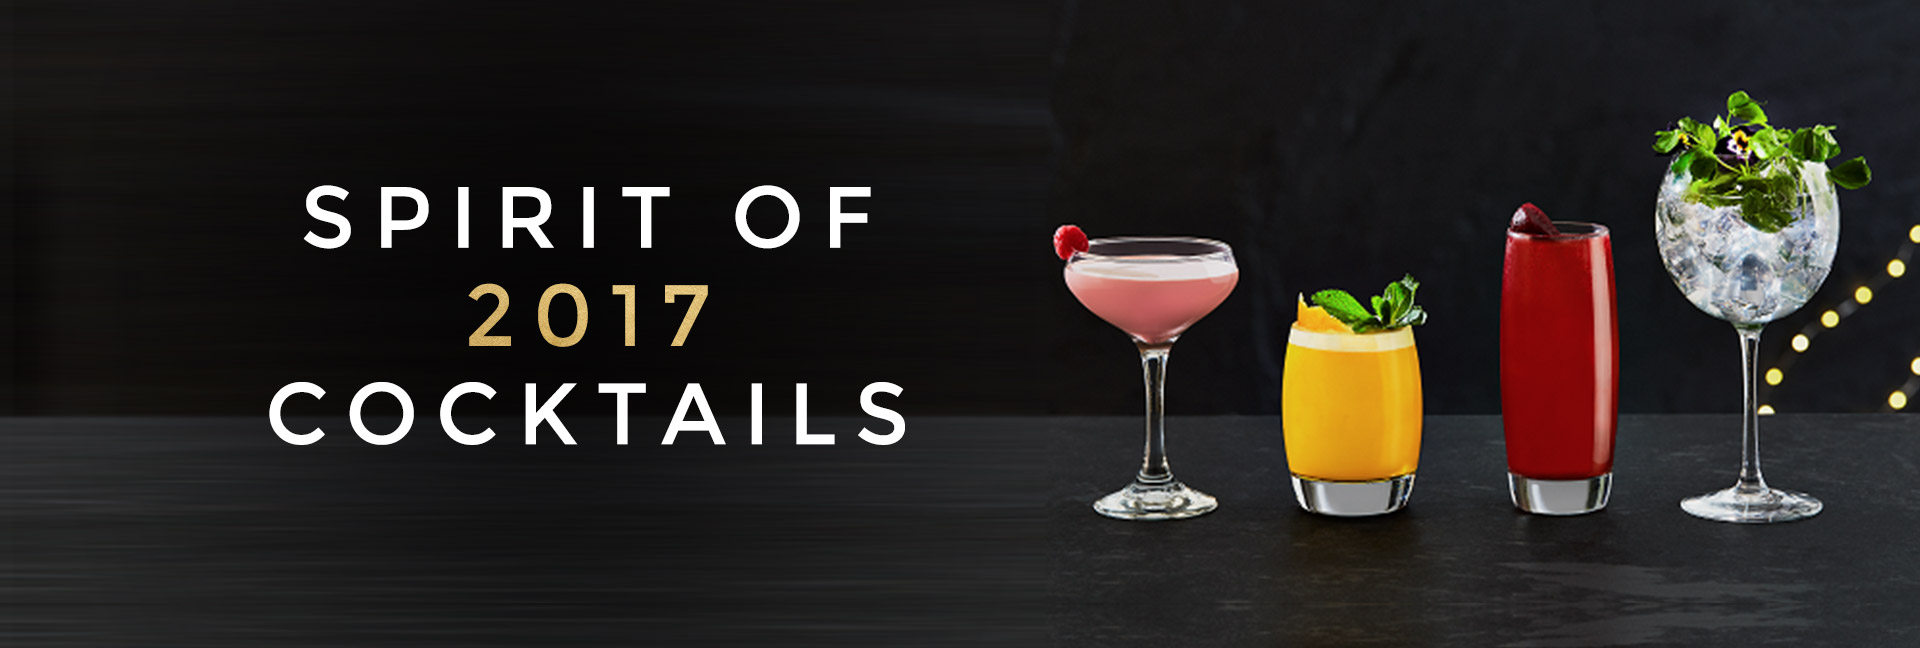 Spirit of 2017 cocktails at All Bar One Wimbledon